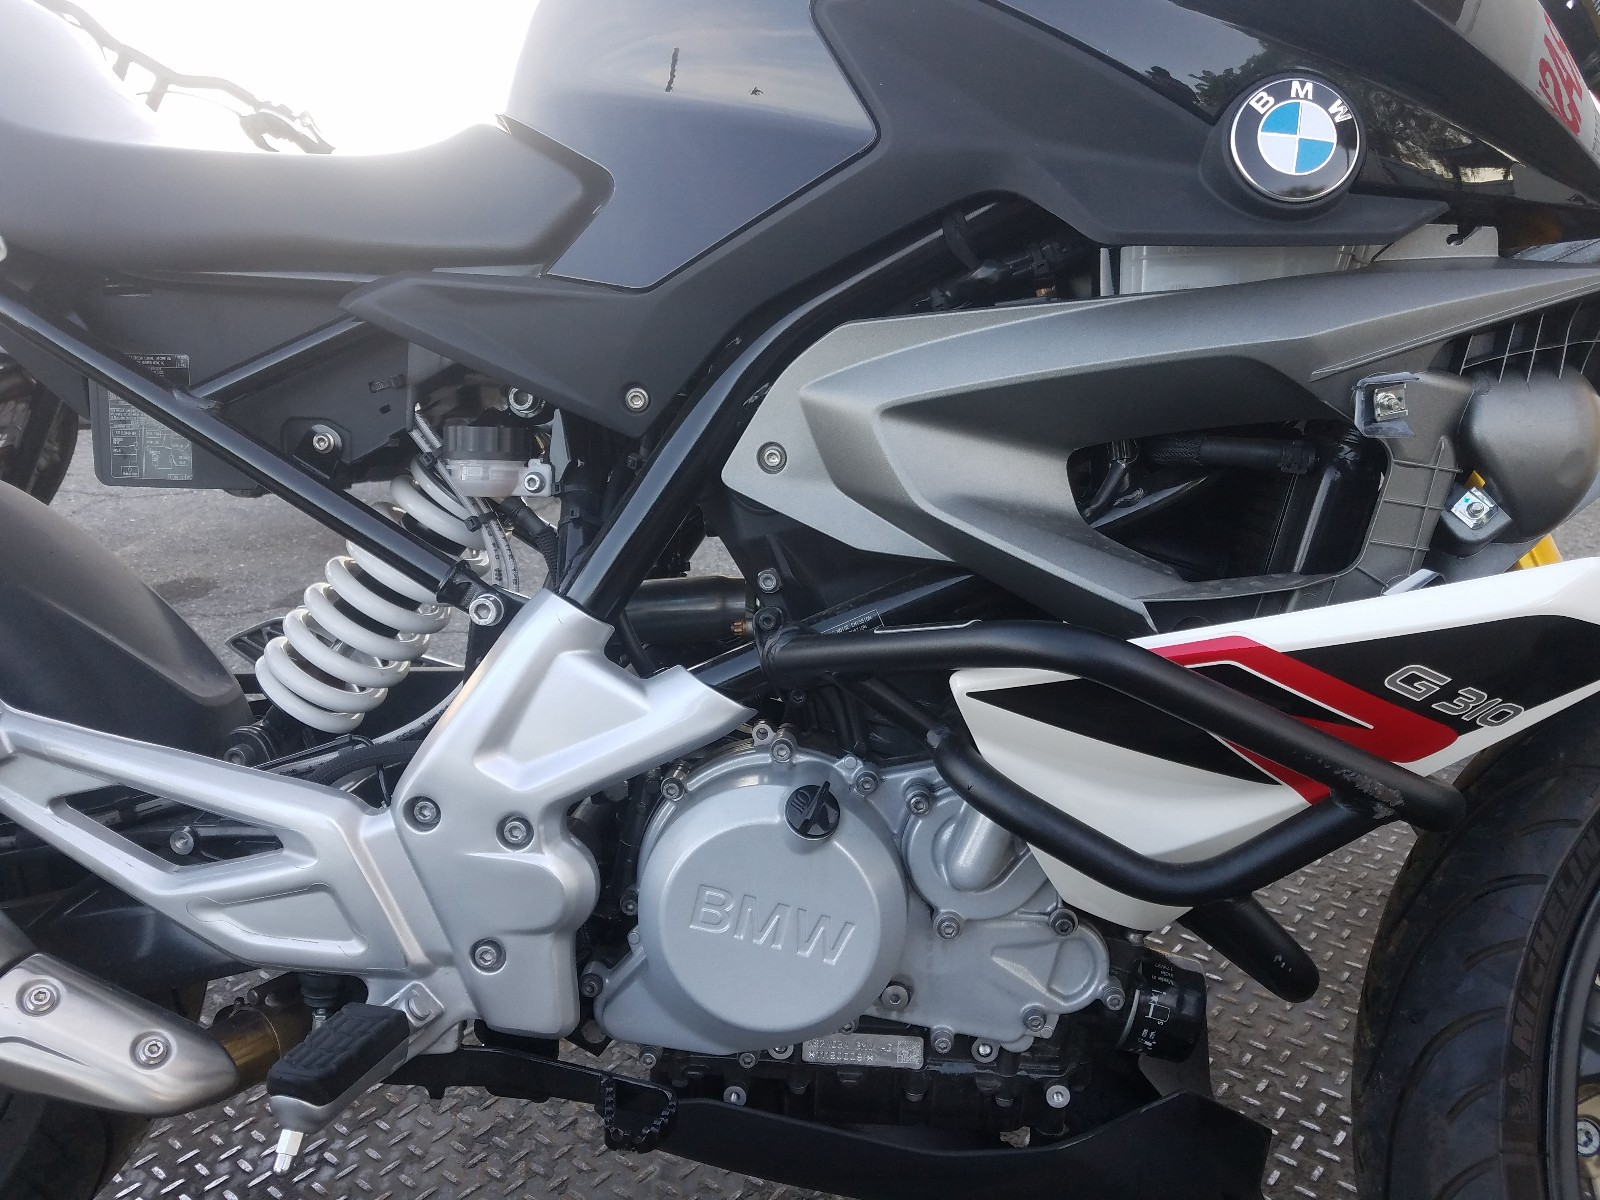 WB30G1105KR857854 - 2019 Bmw G310 R 1 close up View